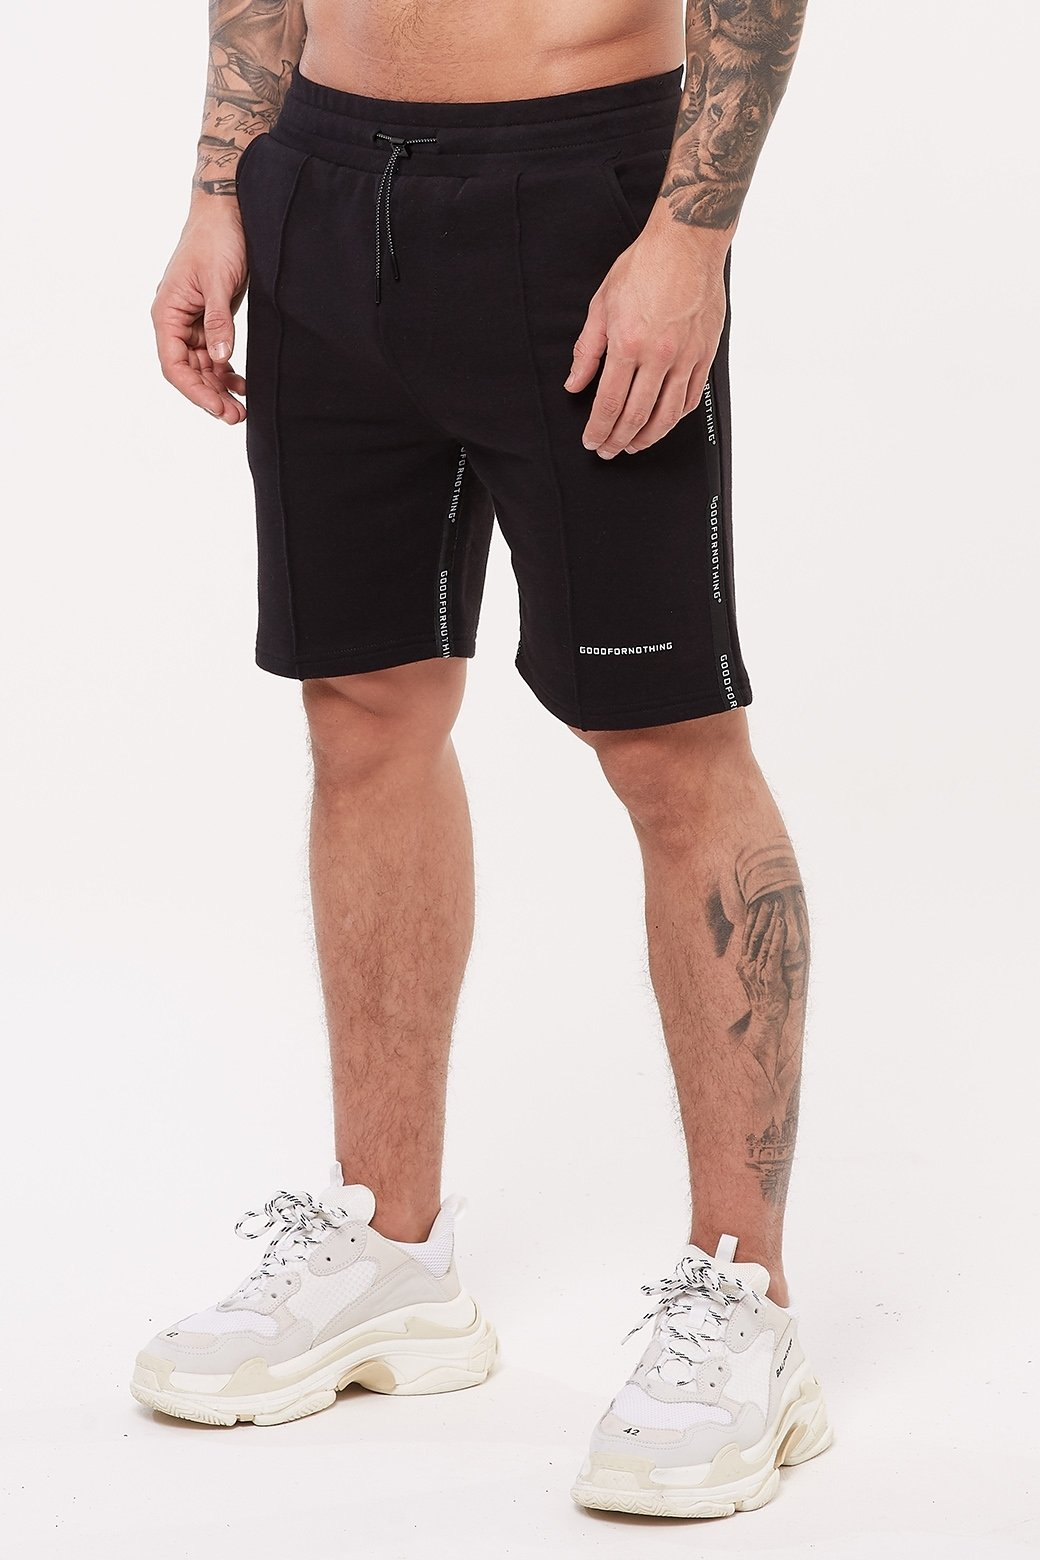 Future Black Shorts - ZANMODA